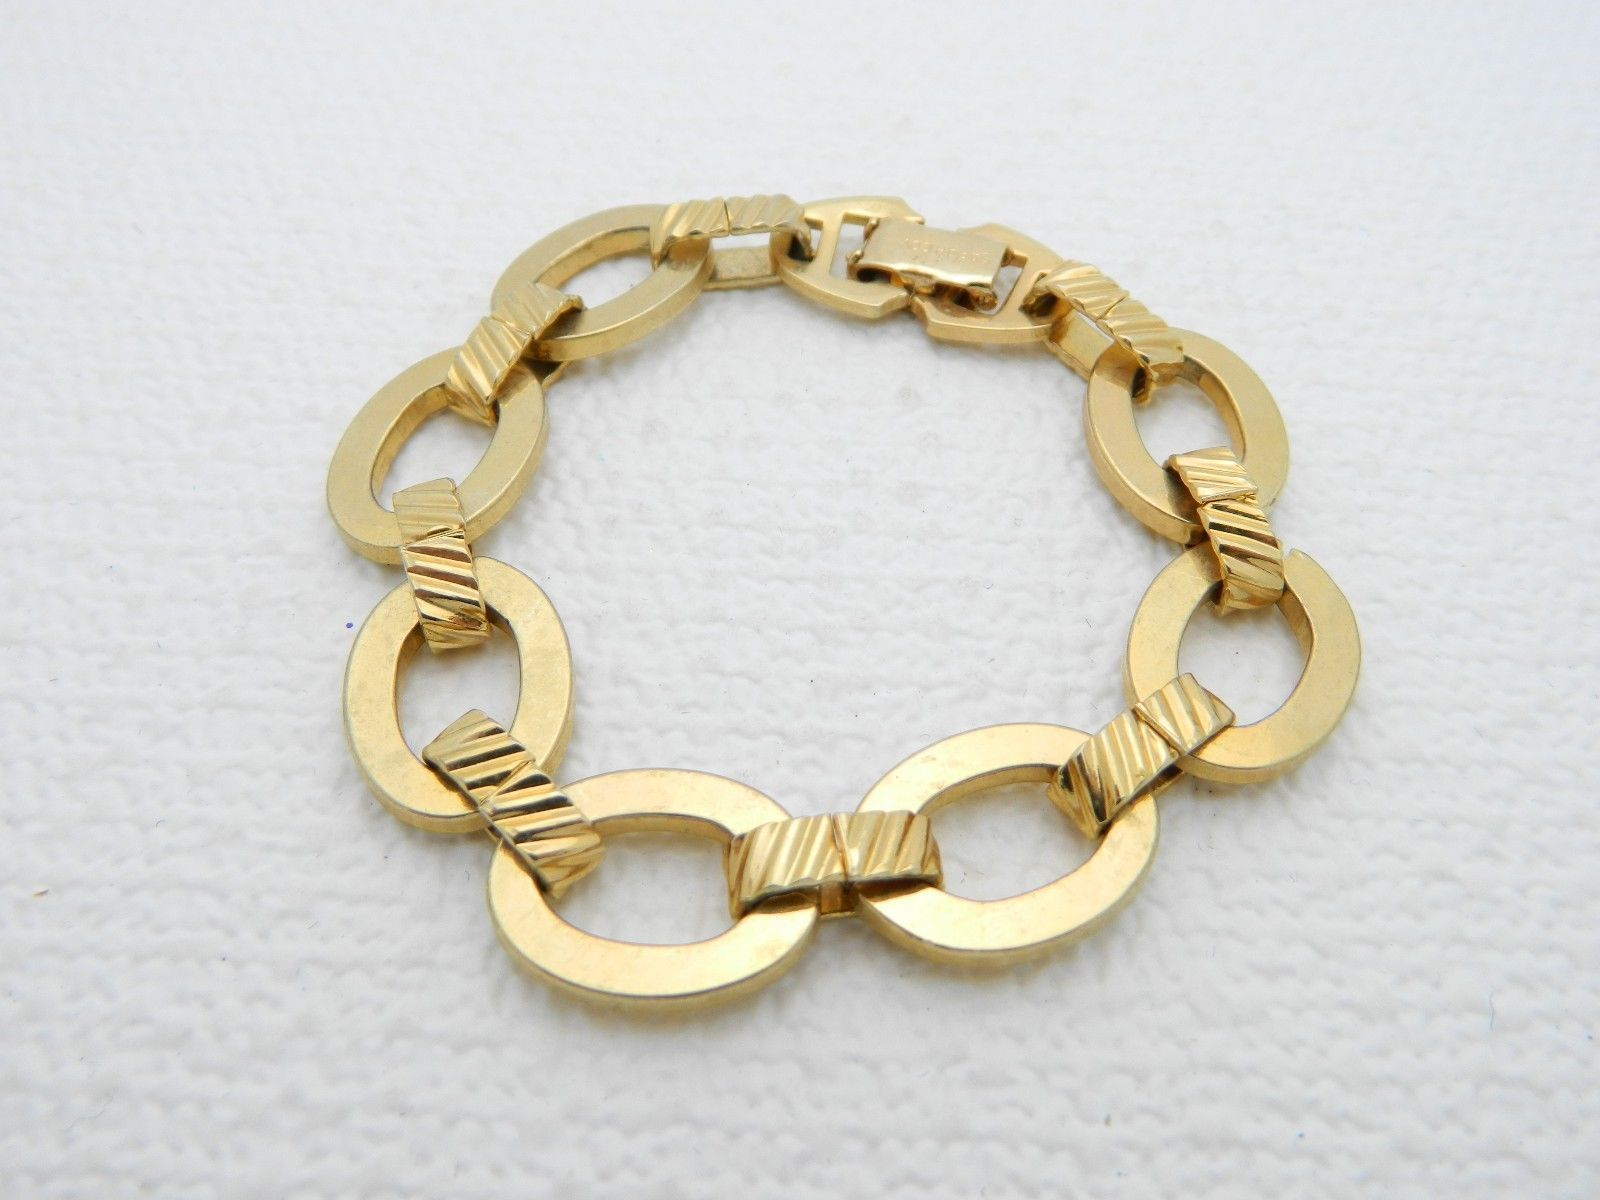 VTG SARAH COVentry Gold Tone Chain Link Open Work Bracelet